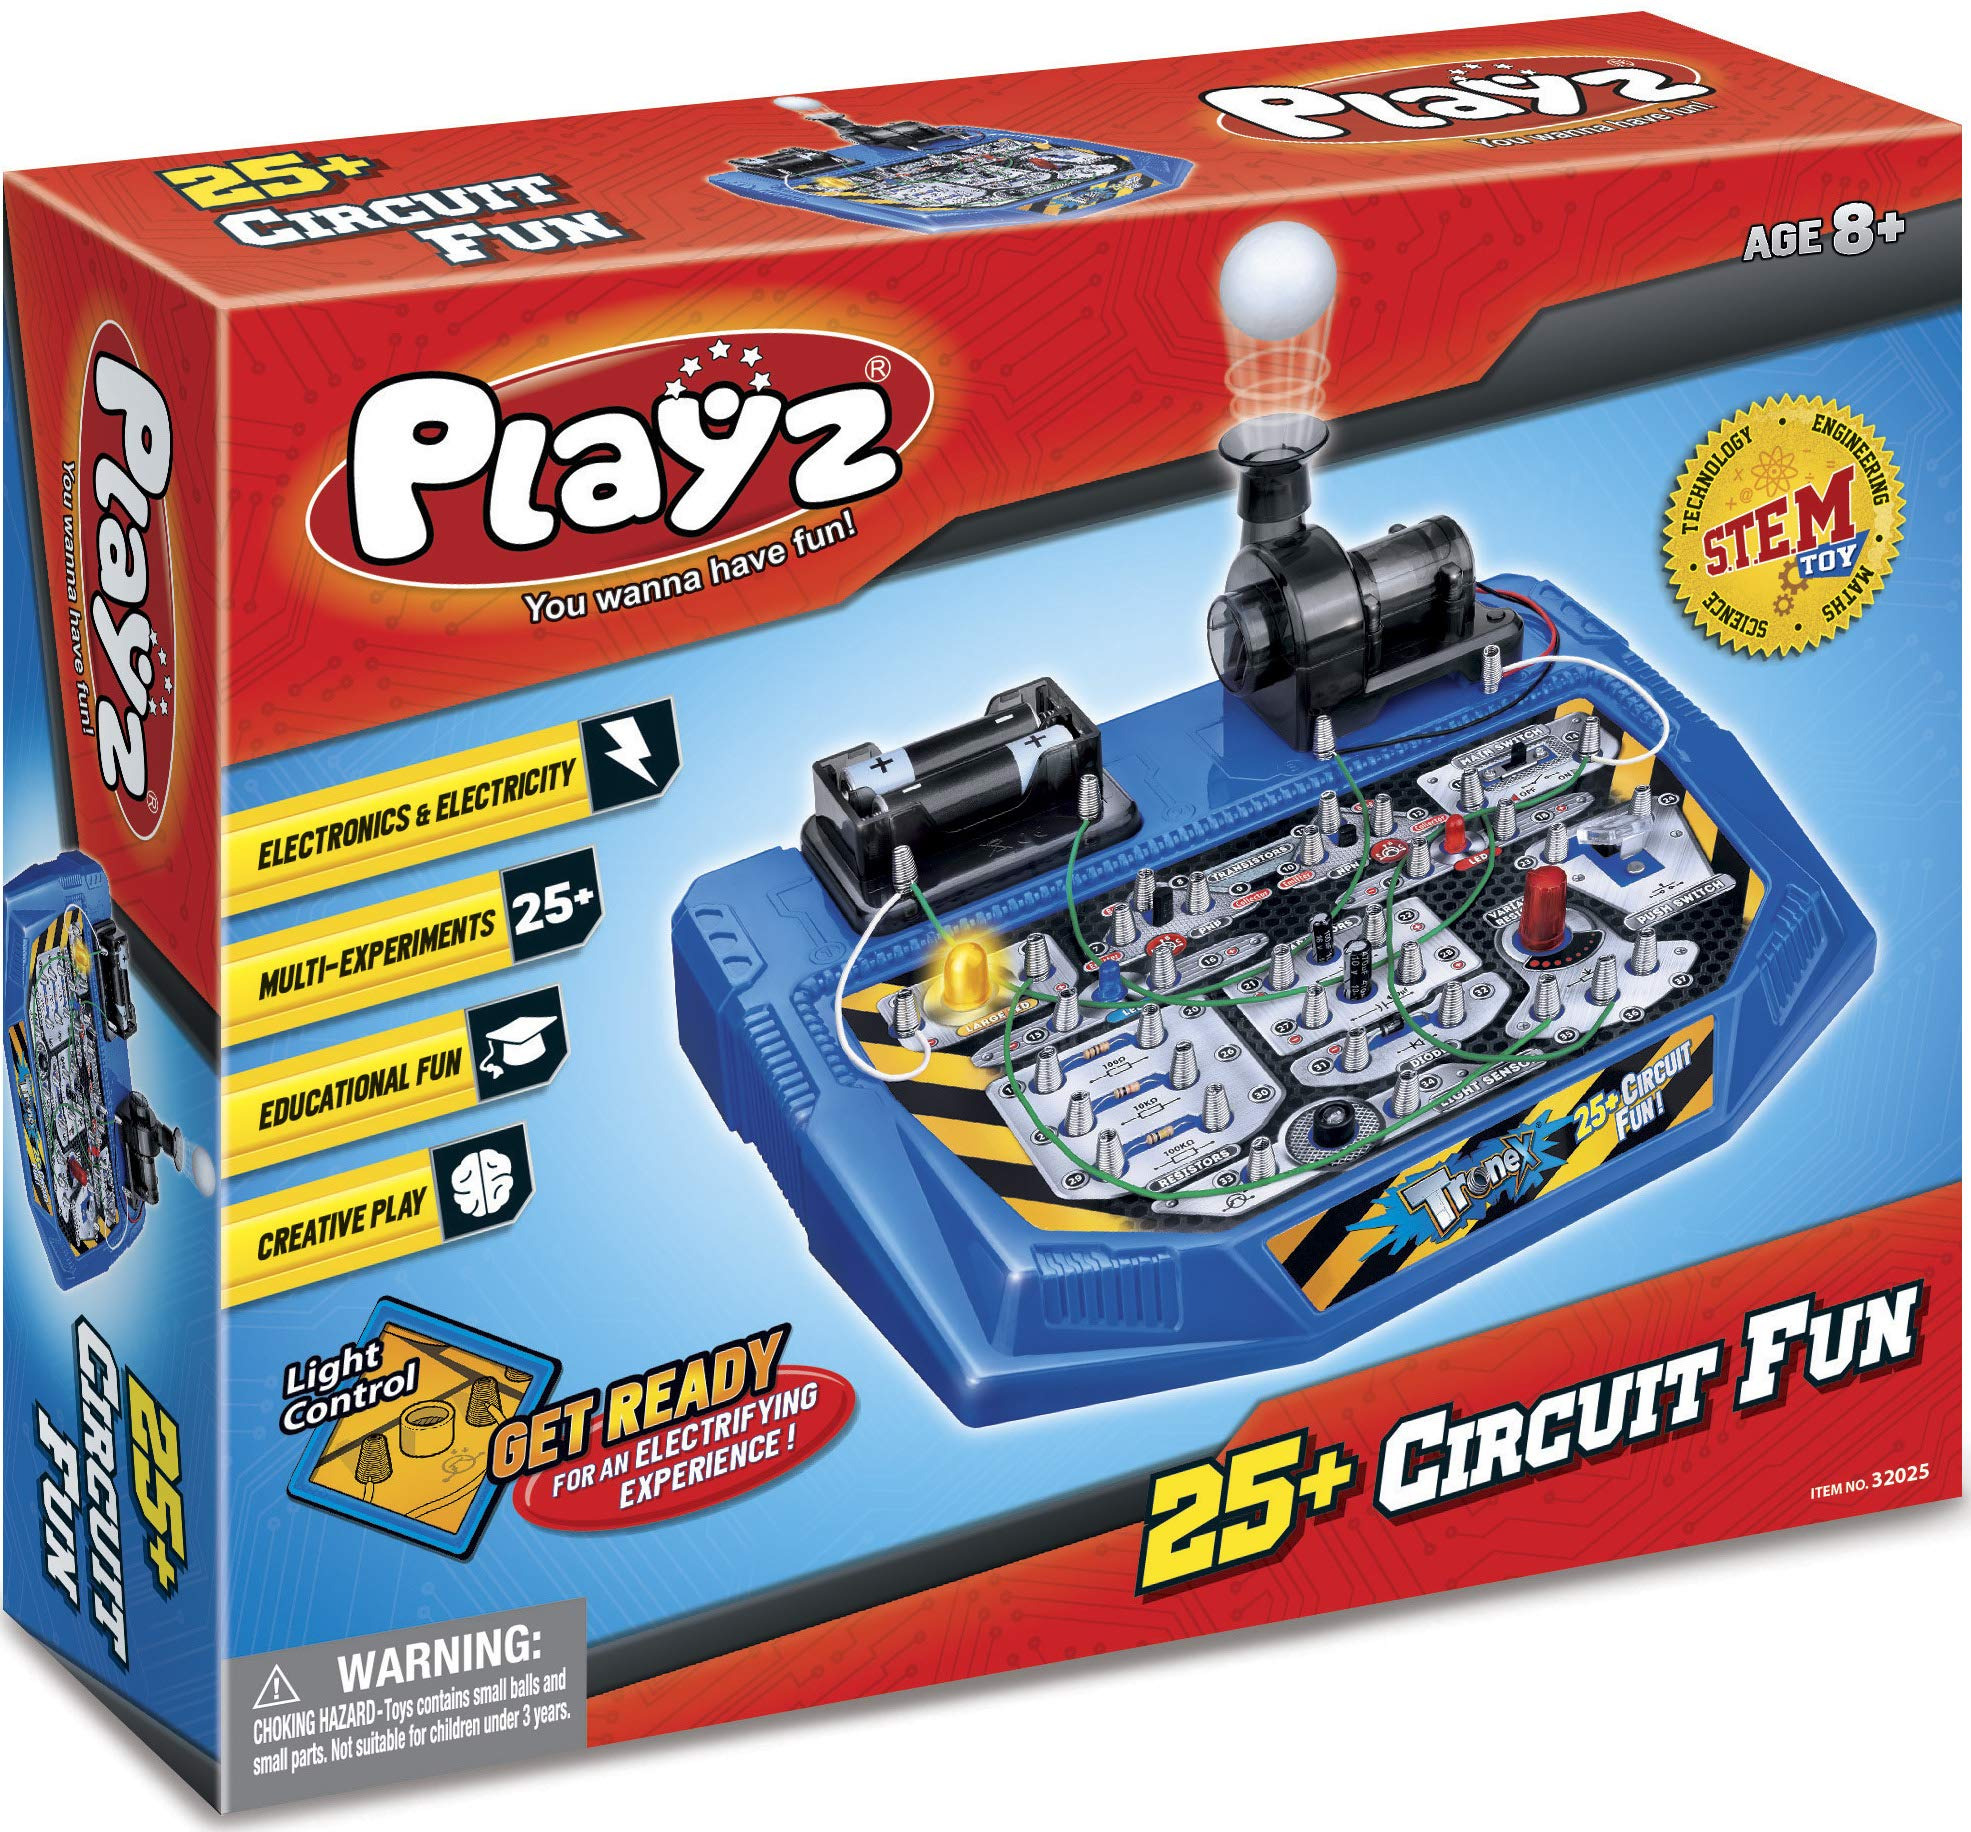 Playz Electrical Circuit Board Engineering Kit for Kids with 25+ STEM Projects Teaching Electricity, Voltage, Currents, Resistance, & Magnetic Science   Gift for Children Age 8, 9, 10, 11, 12, 13+